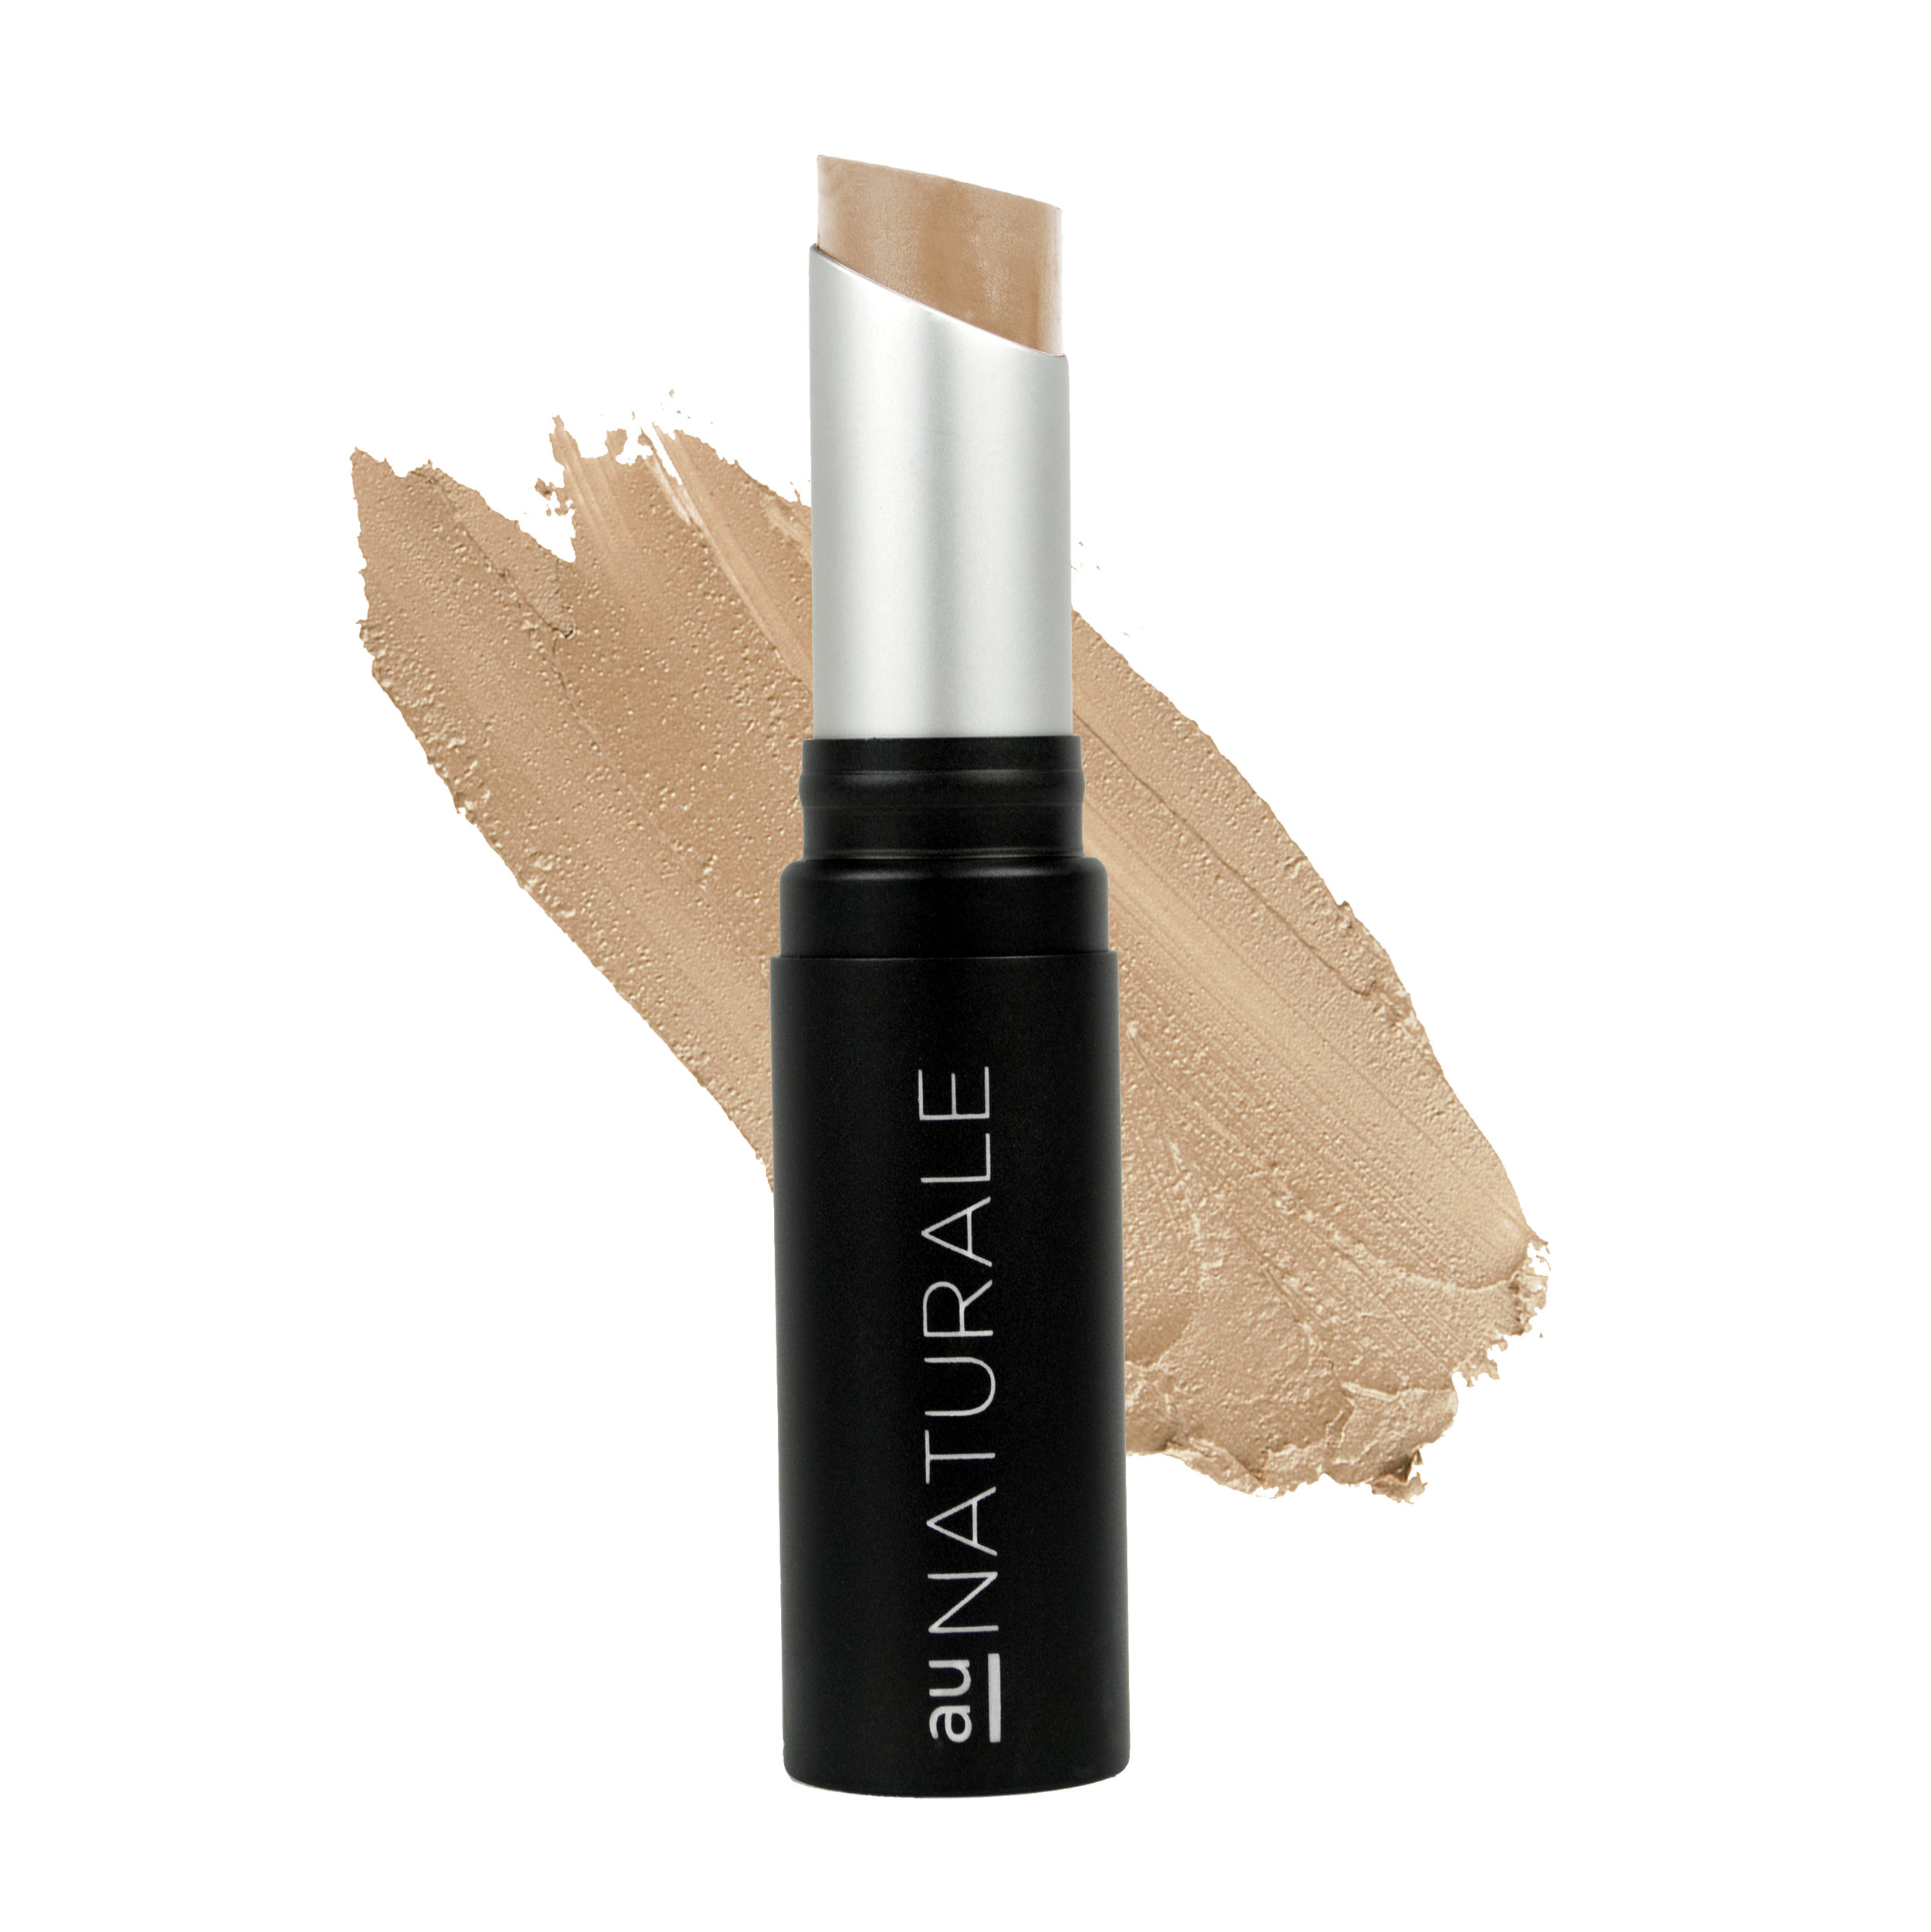 Tulum Completely Covered Creme Concealer